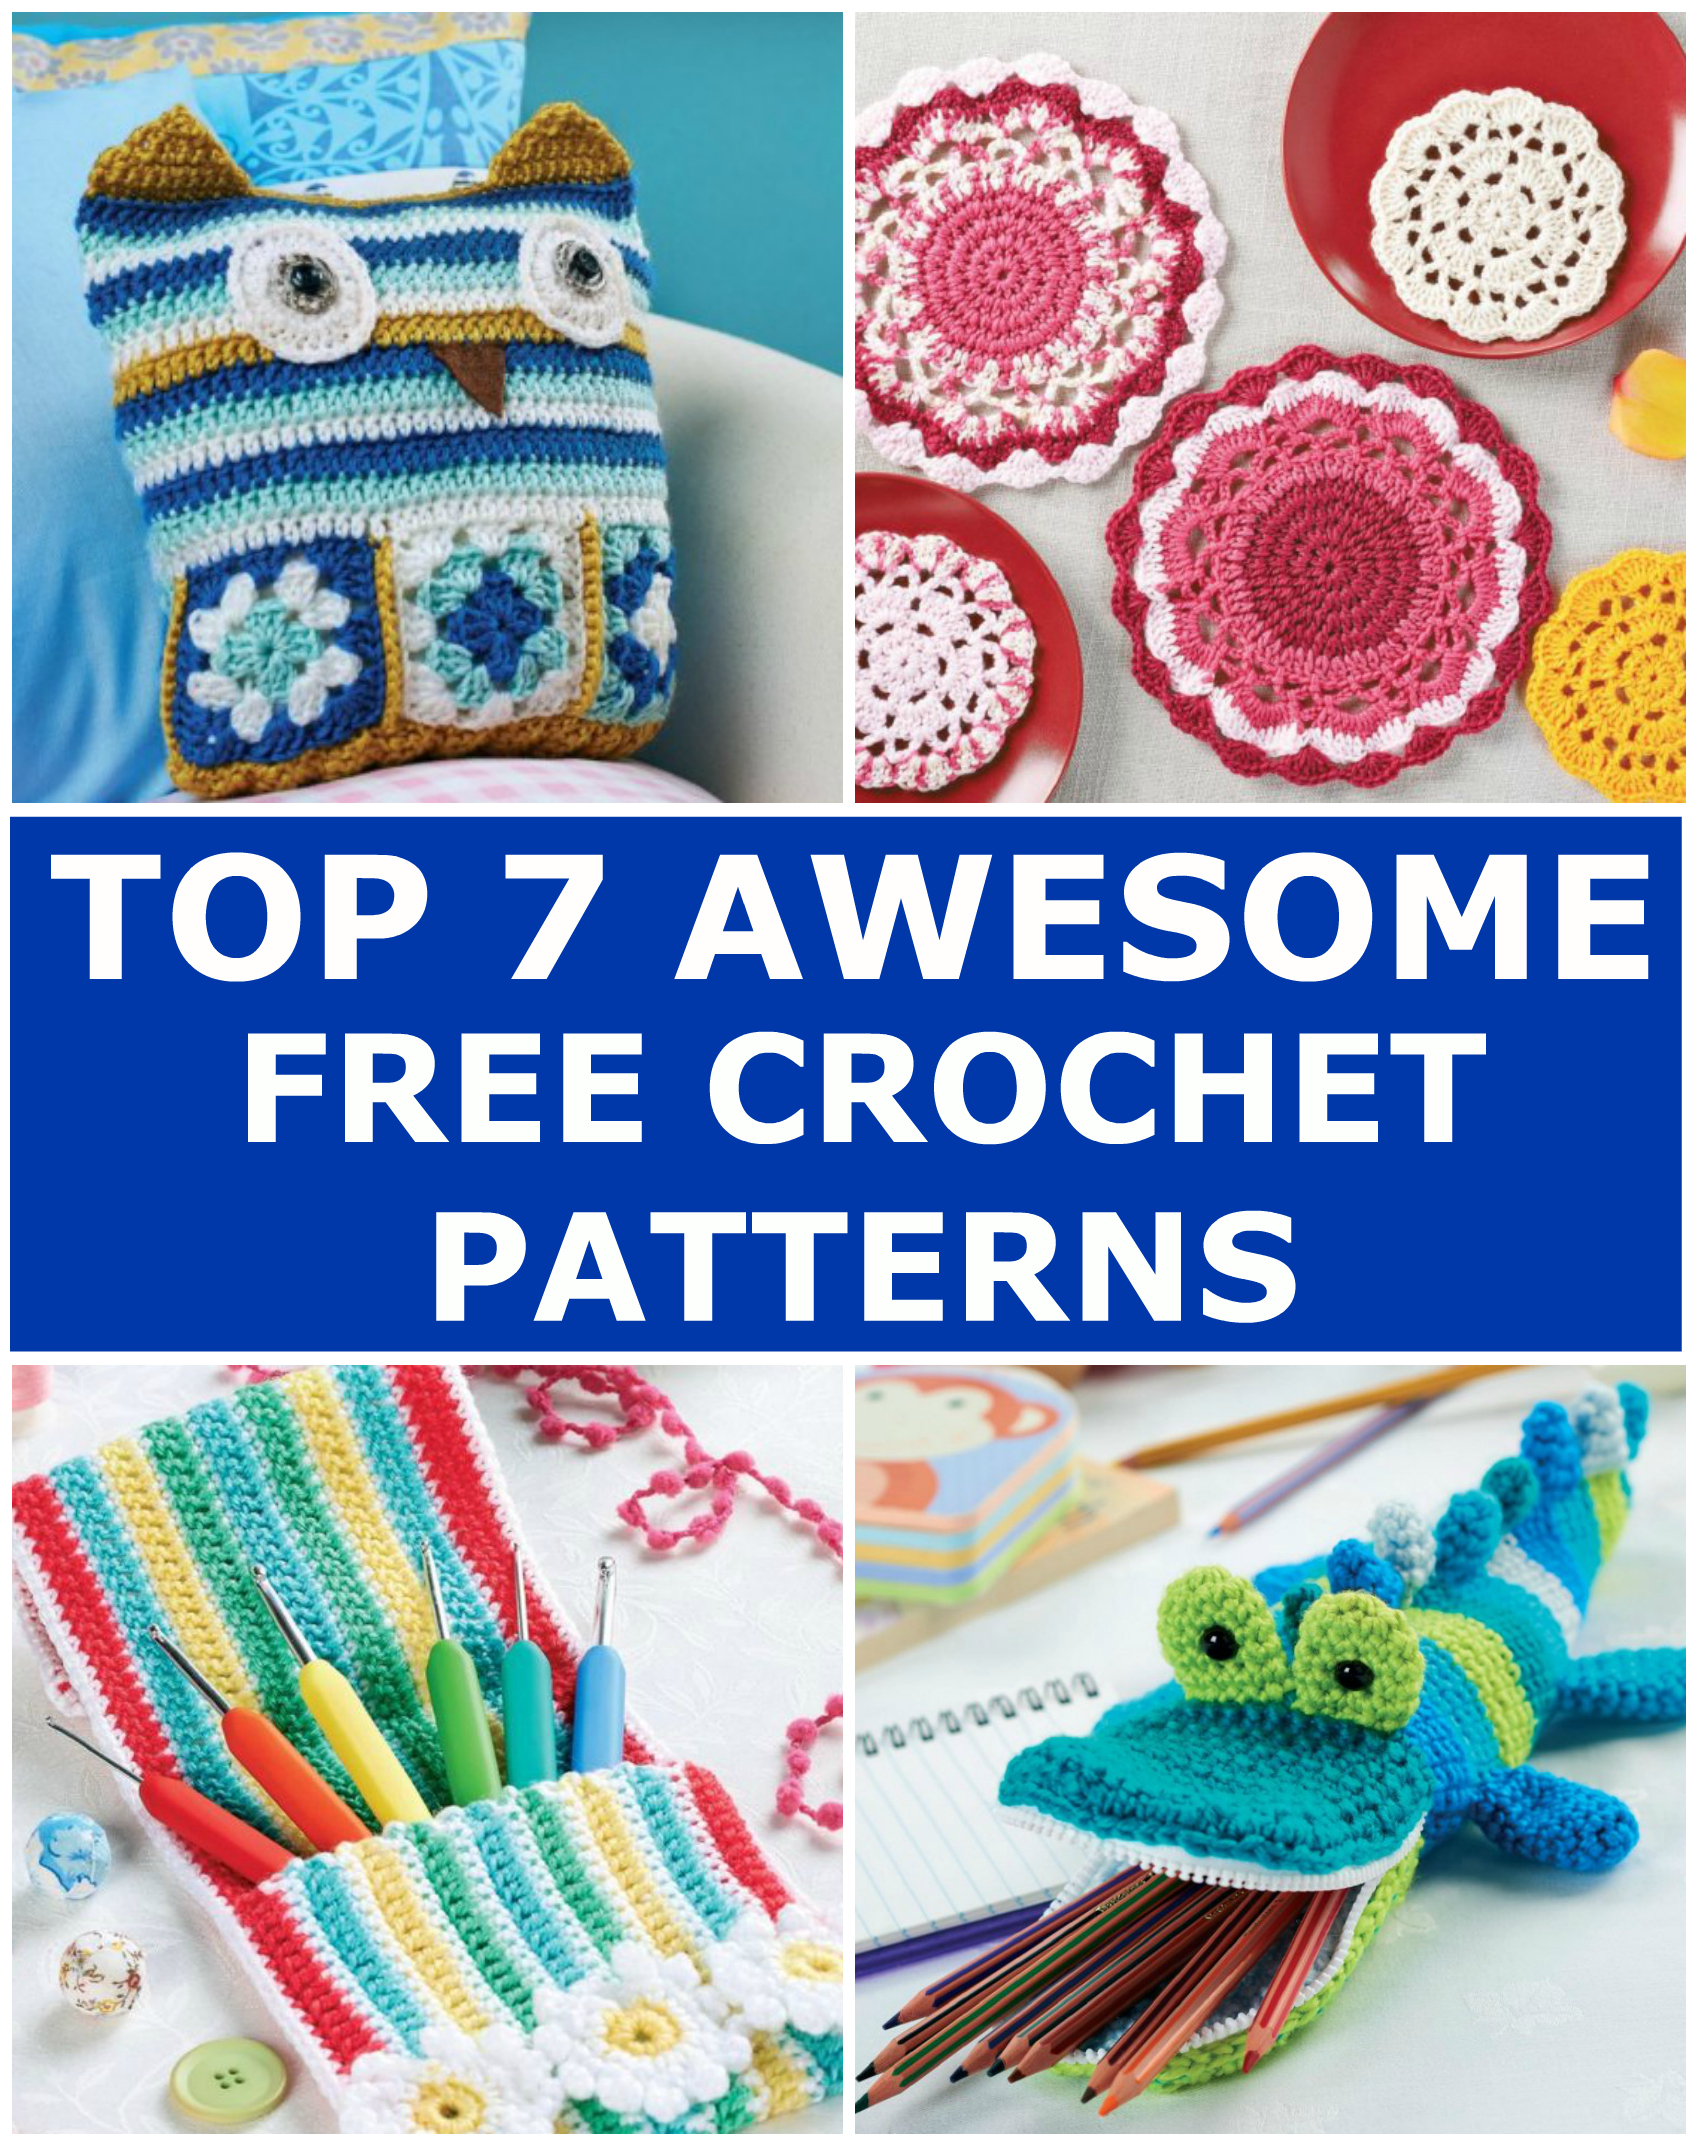 Top 7 Awesome Free Crochet Patterns Guest Contributor Post